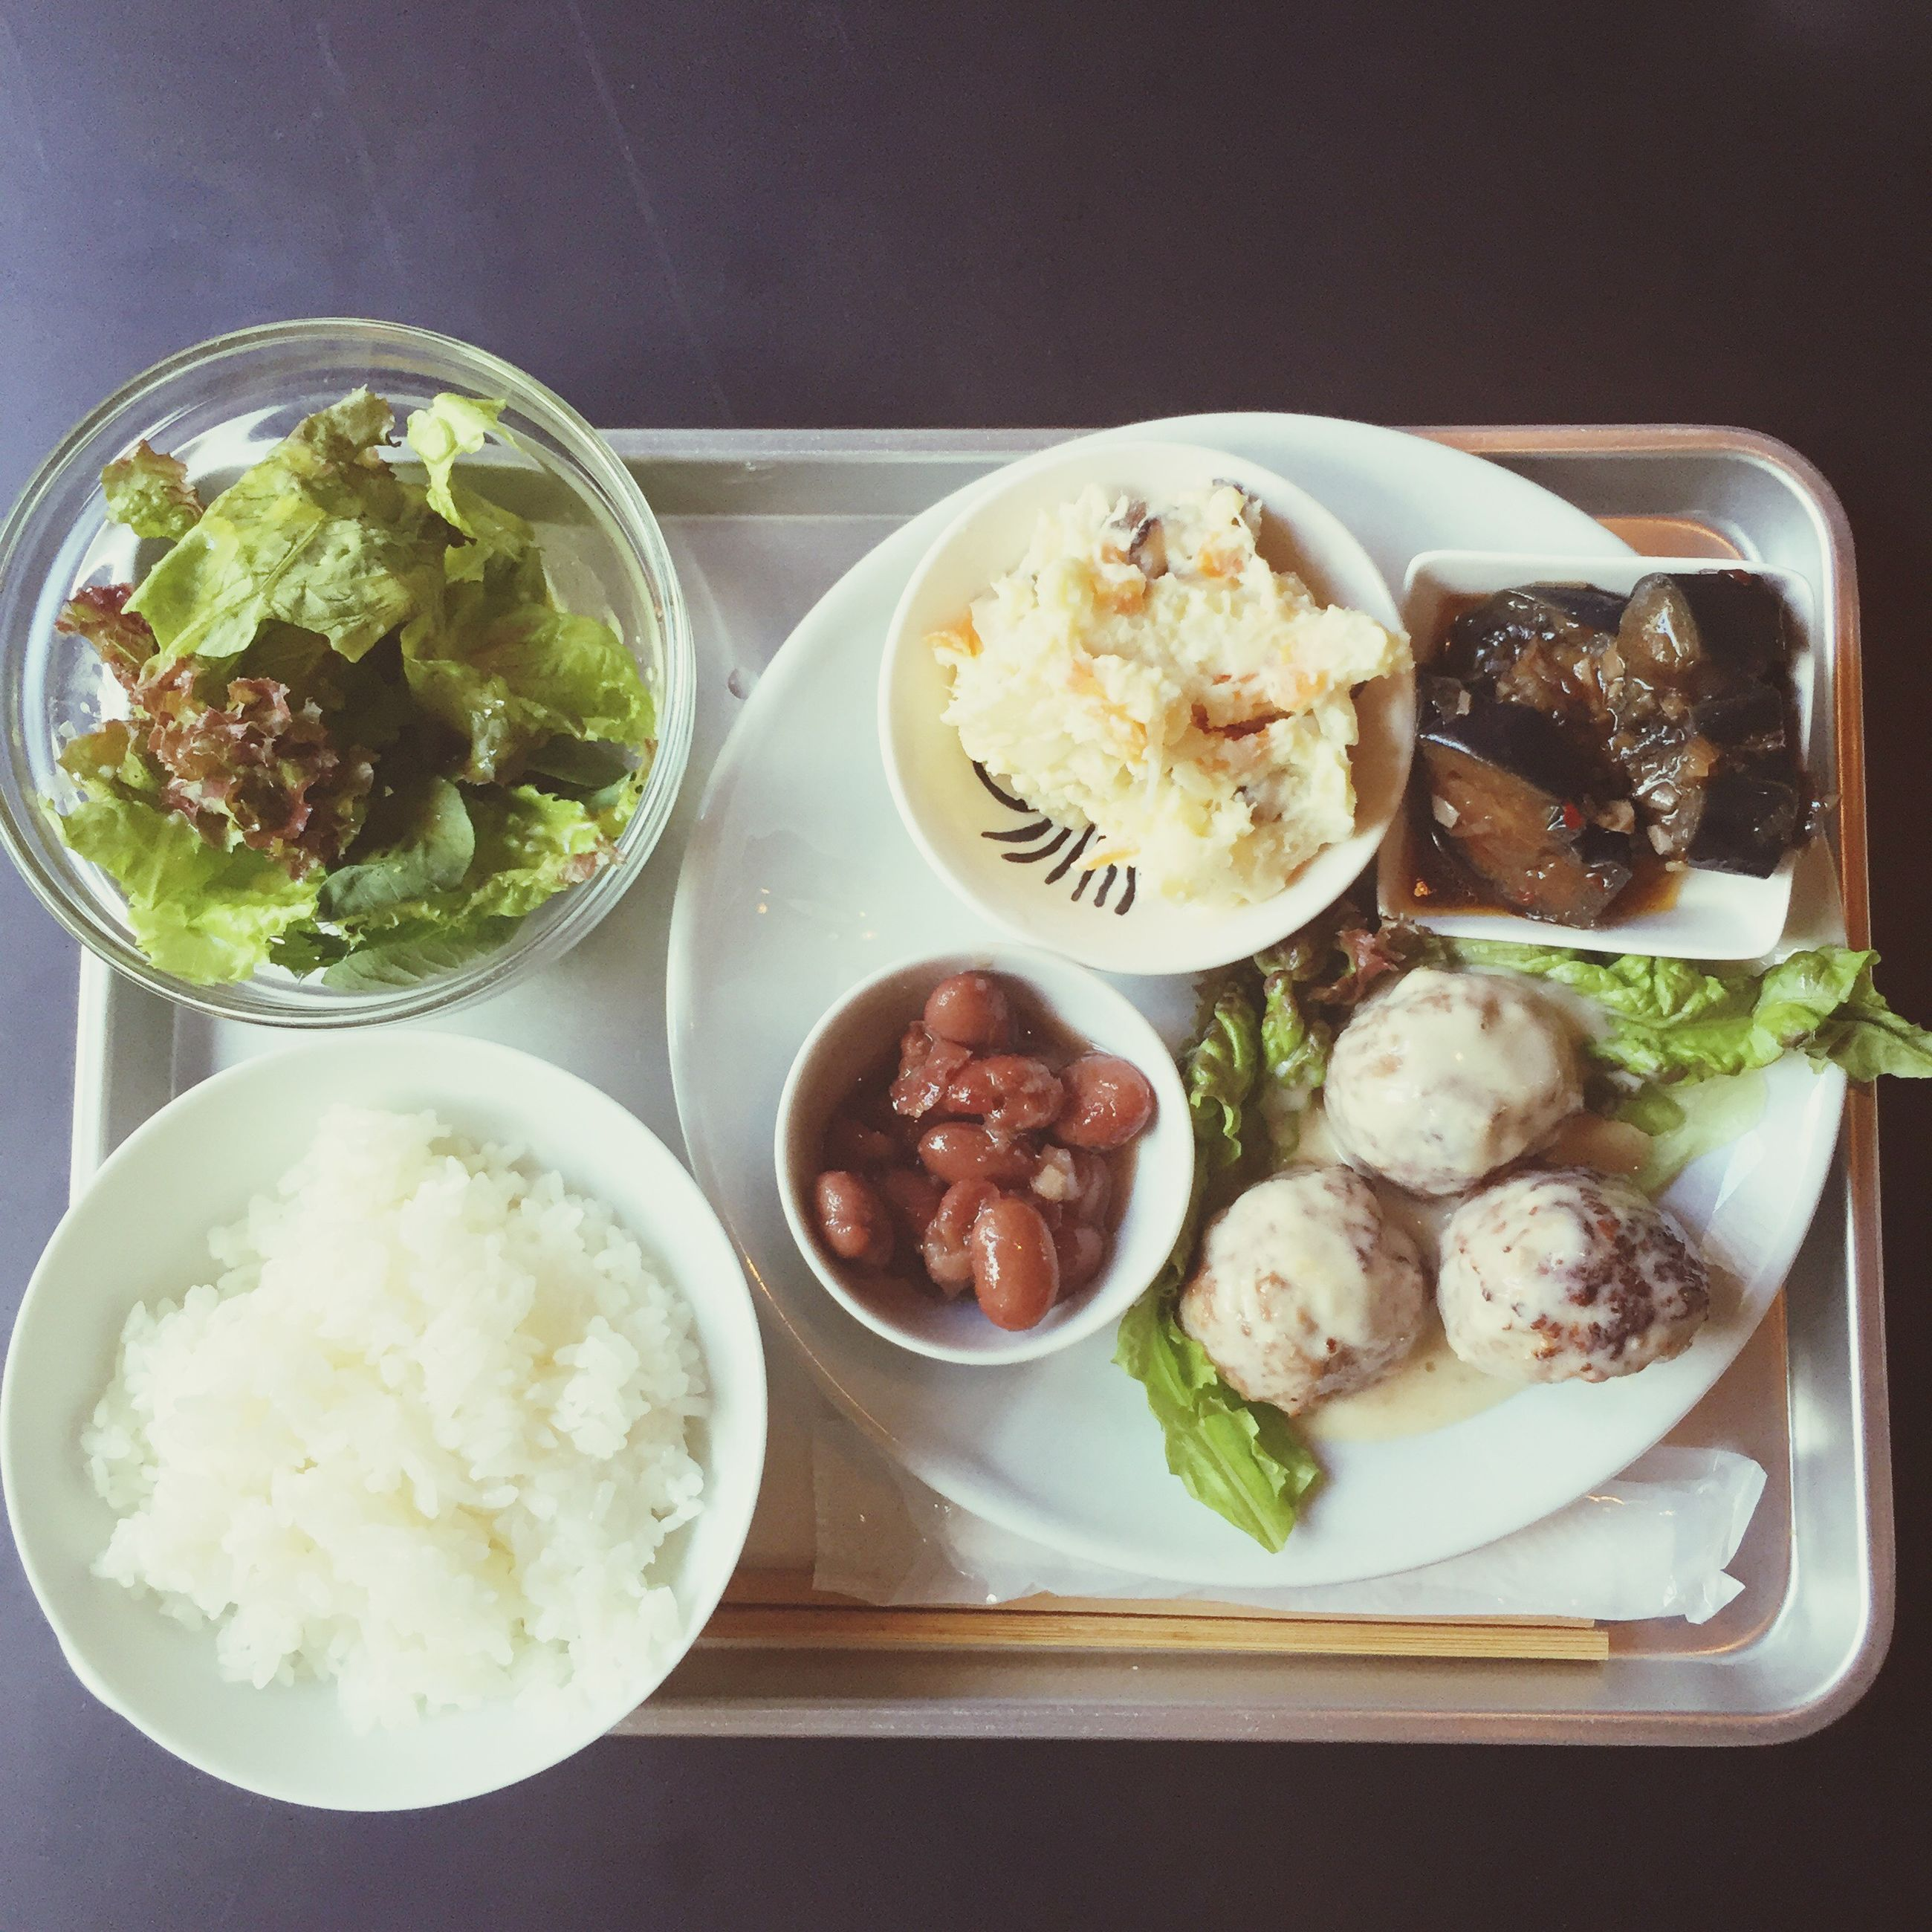 food and drink, food, indoors, plate, freshness, table, meal, ready-to-eat, healthy lifestyle, healthy eating, serving size, chopsticks, bowl, vegetable, selective focus, temptation, serving dish, appetizer, main course, food styling, prepared food, lunch, overhead view